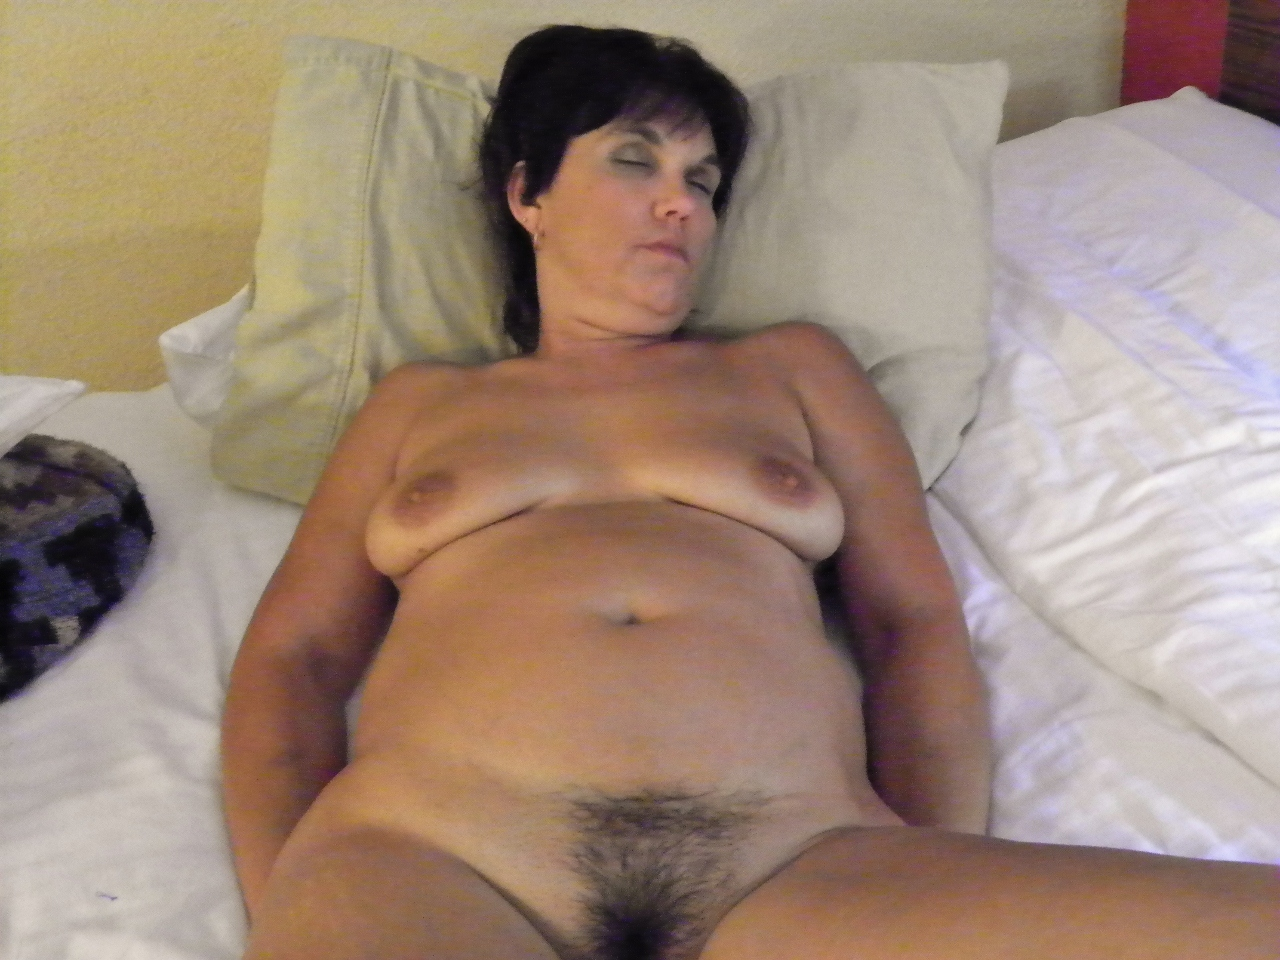 Pity, Hairy ass milf sleeping